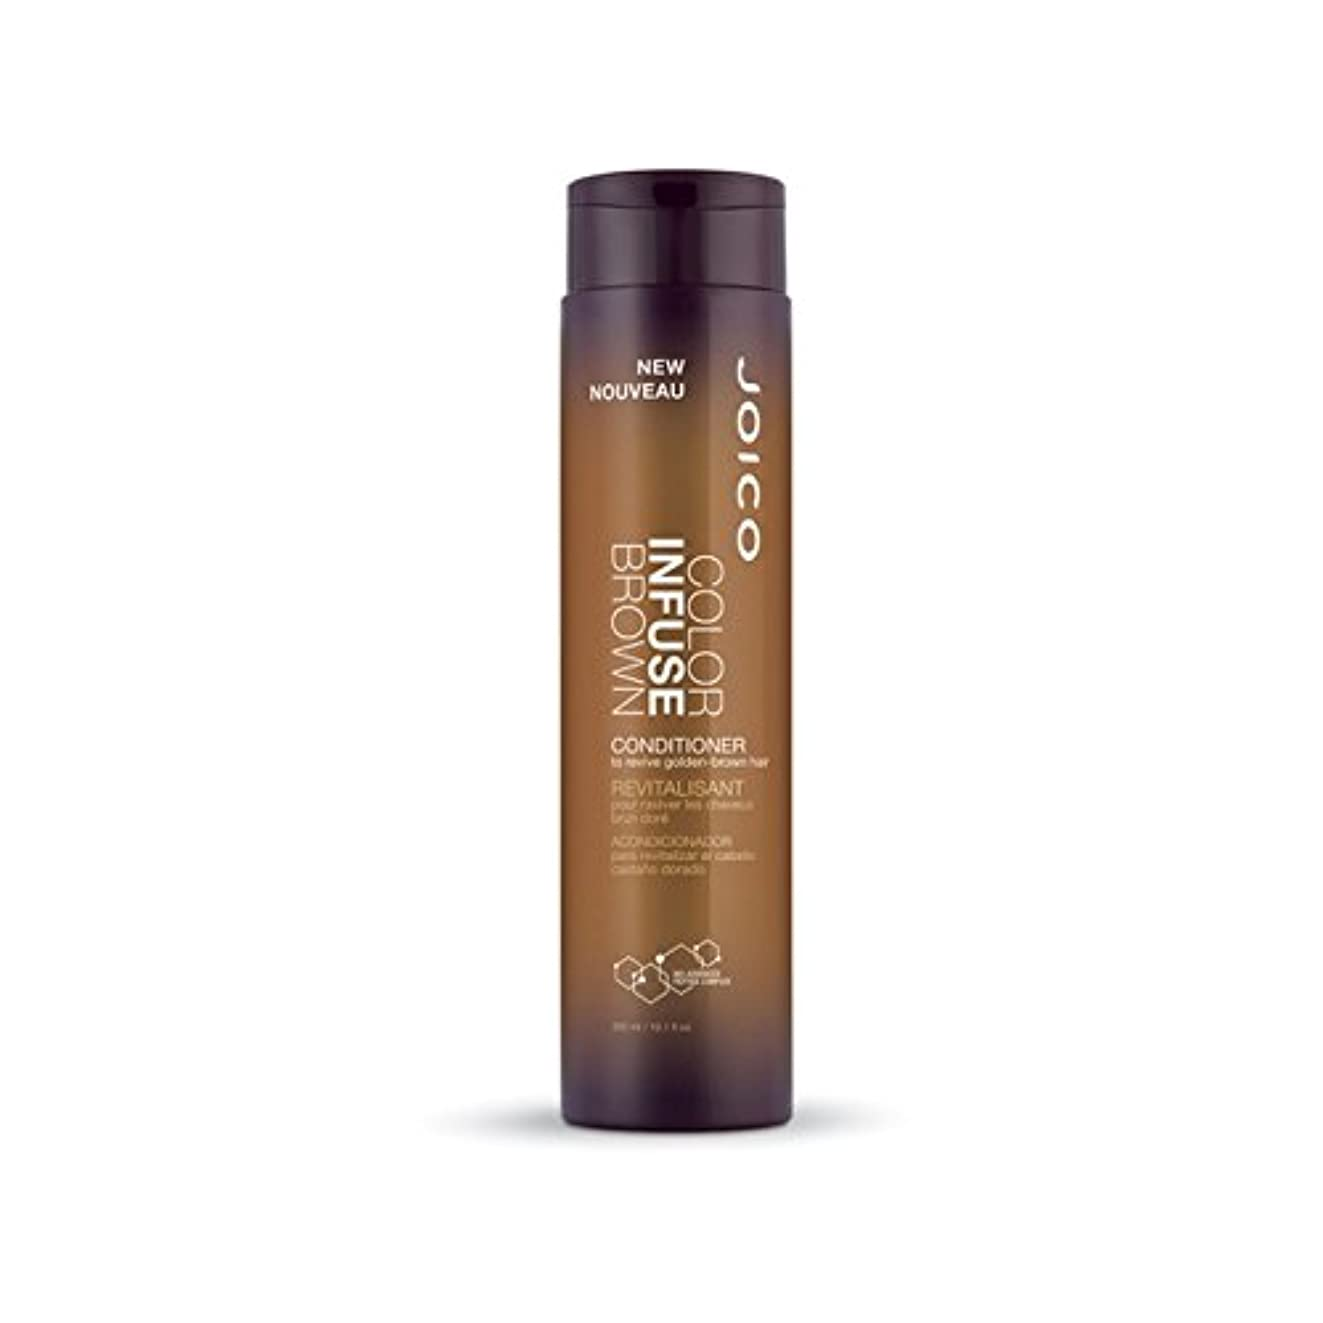 Joico Color Infuse Brown Conditioner 300ml (Pack of 6) - ジョイコ色は茶色コンディショナー300ミリリットルを注入します x6 [並行輸入品]